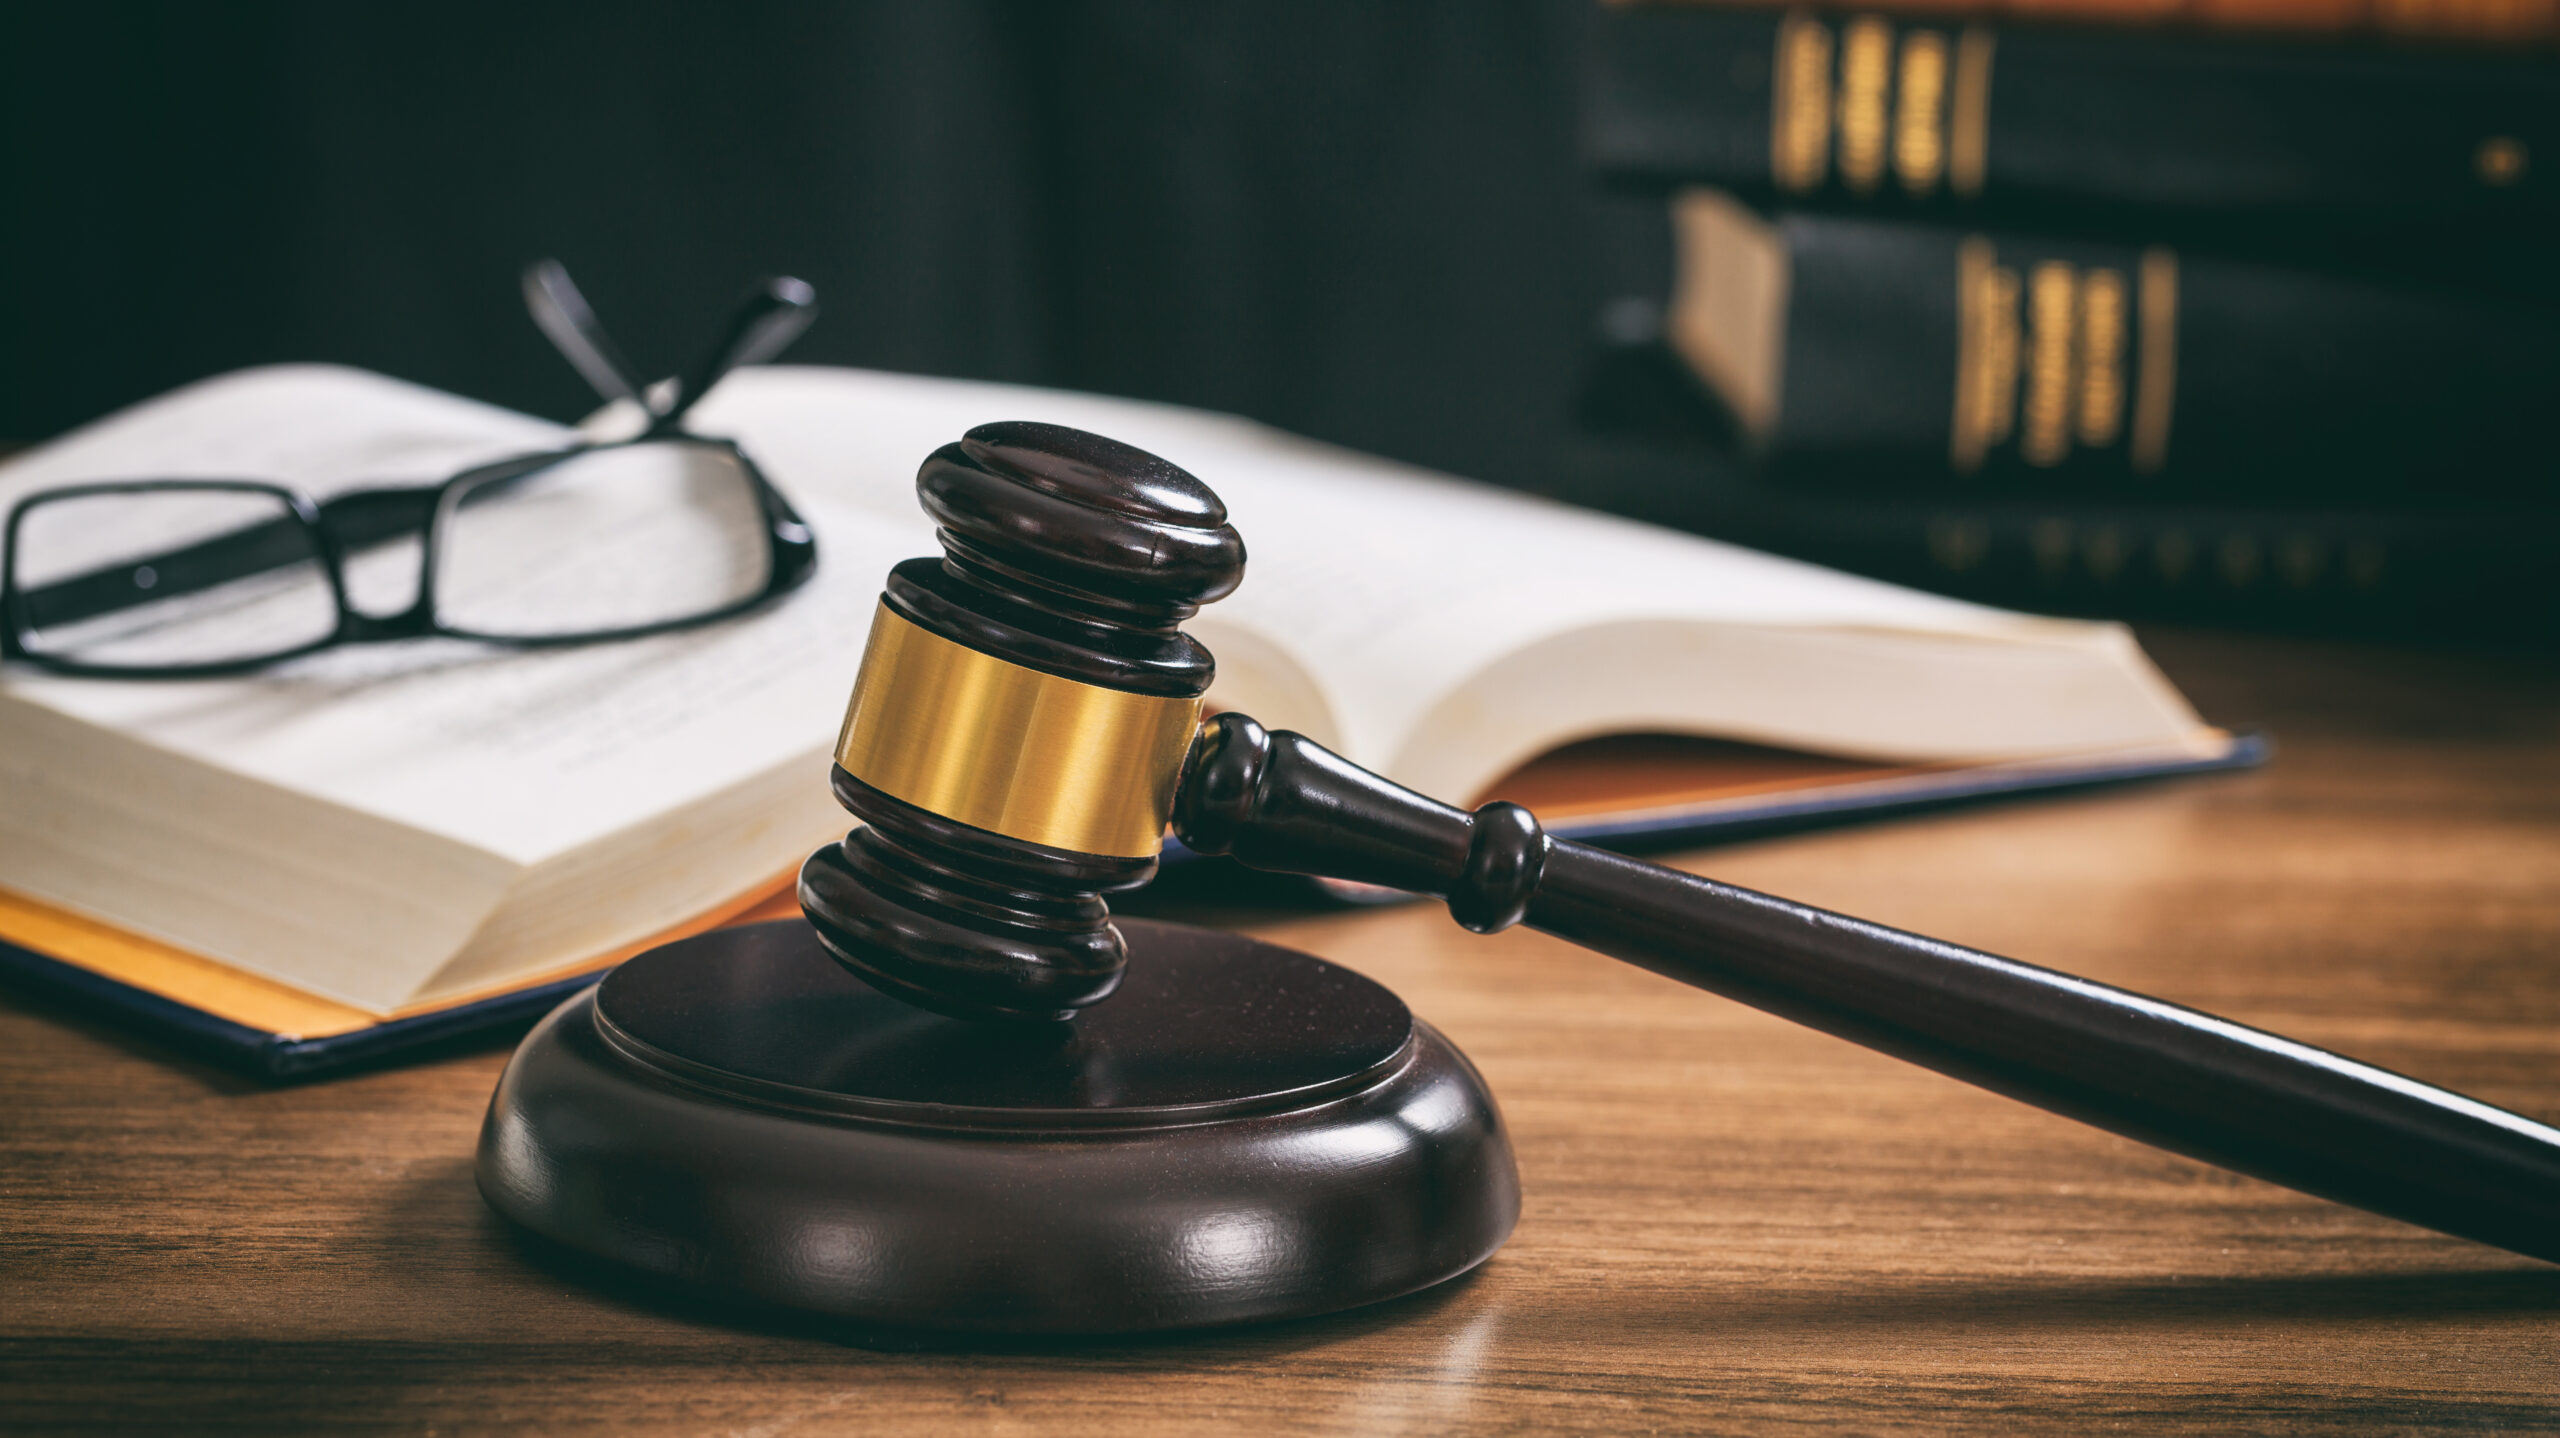 Law gavel on a wooden desk, law books background